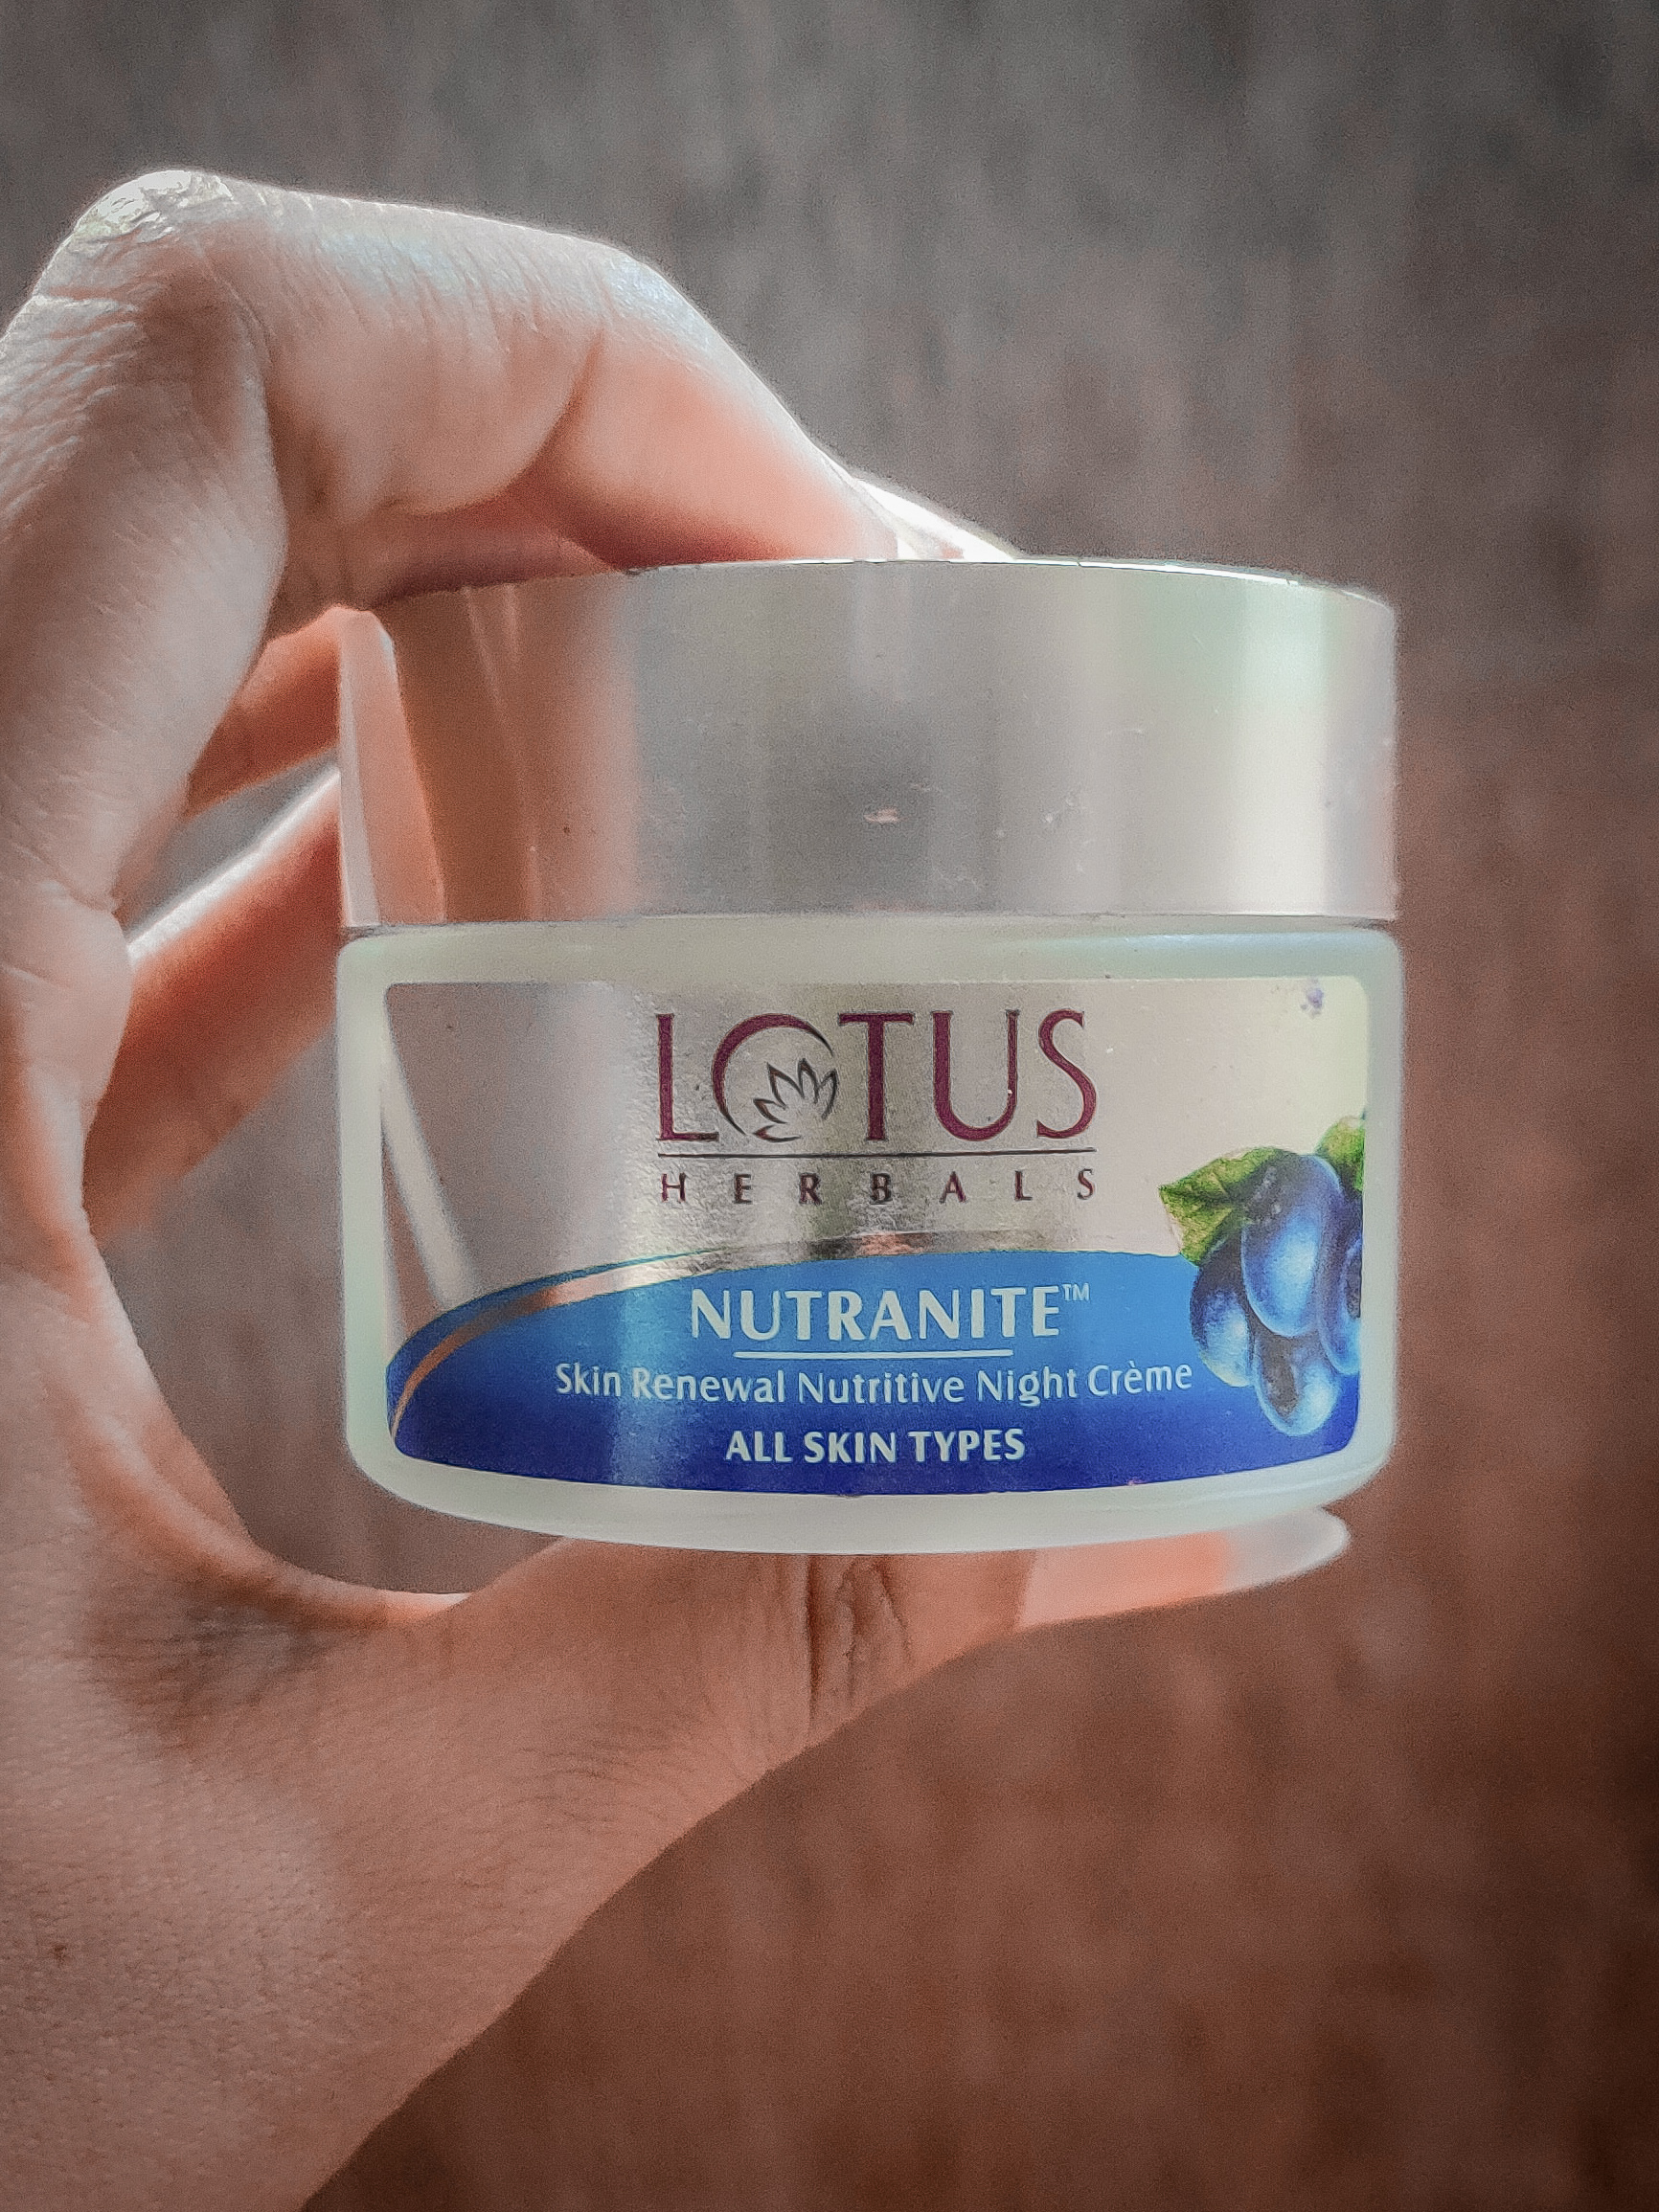 Lotus Herbals Nutranite Skin Renewal Nutritive Night Cream-Most effective night cream-By shivangigosavi